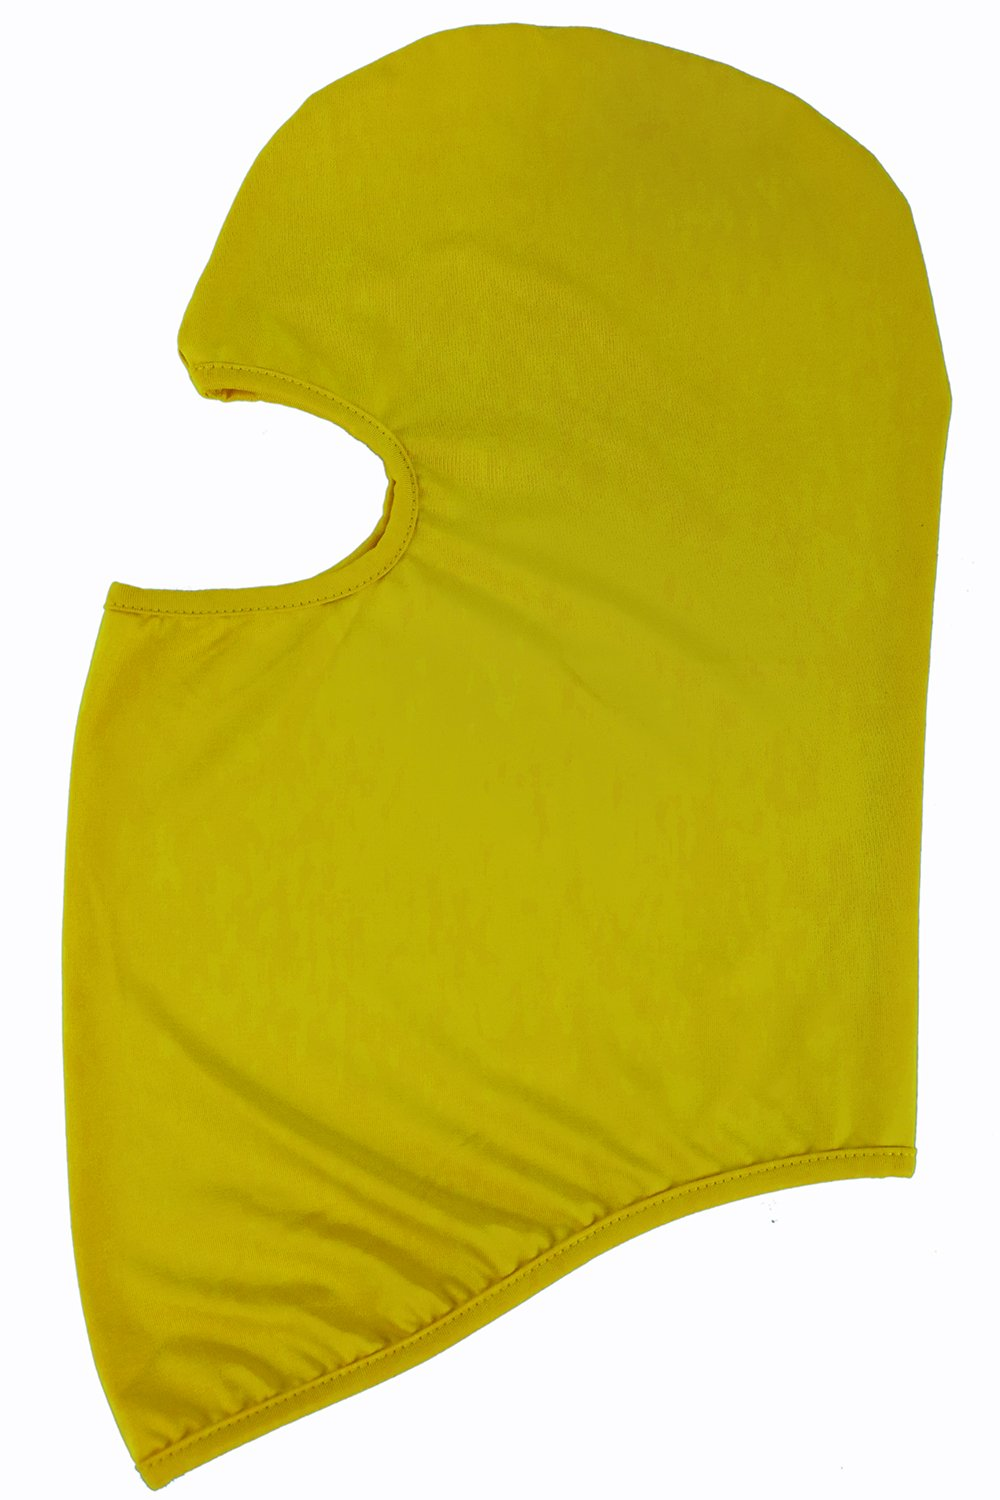 NewNow Candy Color Ultra Thin Ski Face Mask Under A Bike/Football Helmet -Balaclava (Yellow) by NewNow (Image #2)